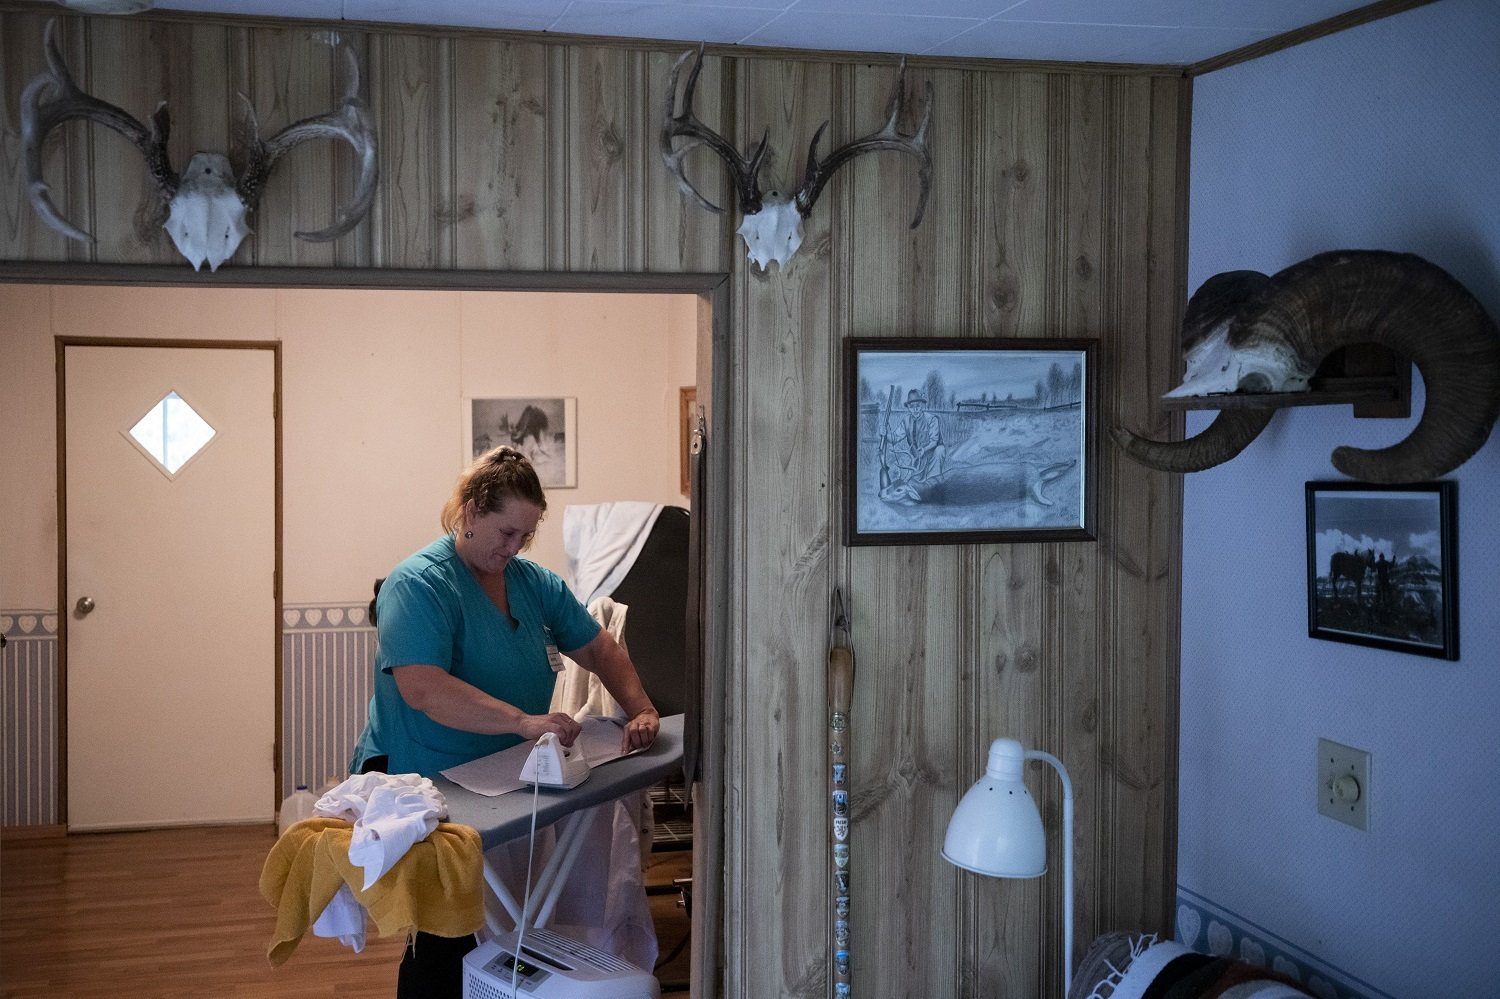 Care worker Jenny Kastra works in an Abbotsford home. (Ben Nelms/CBC)